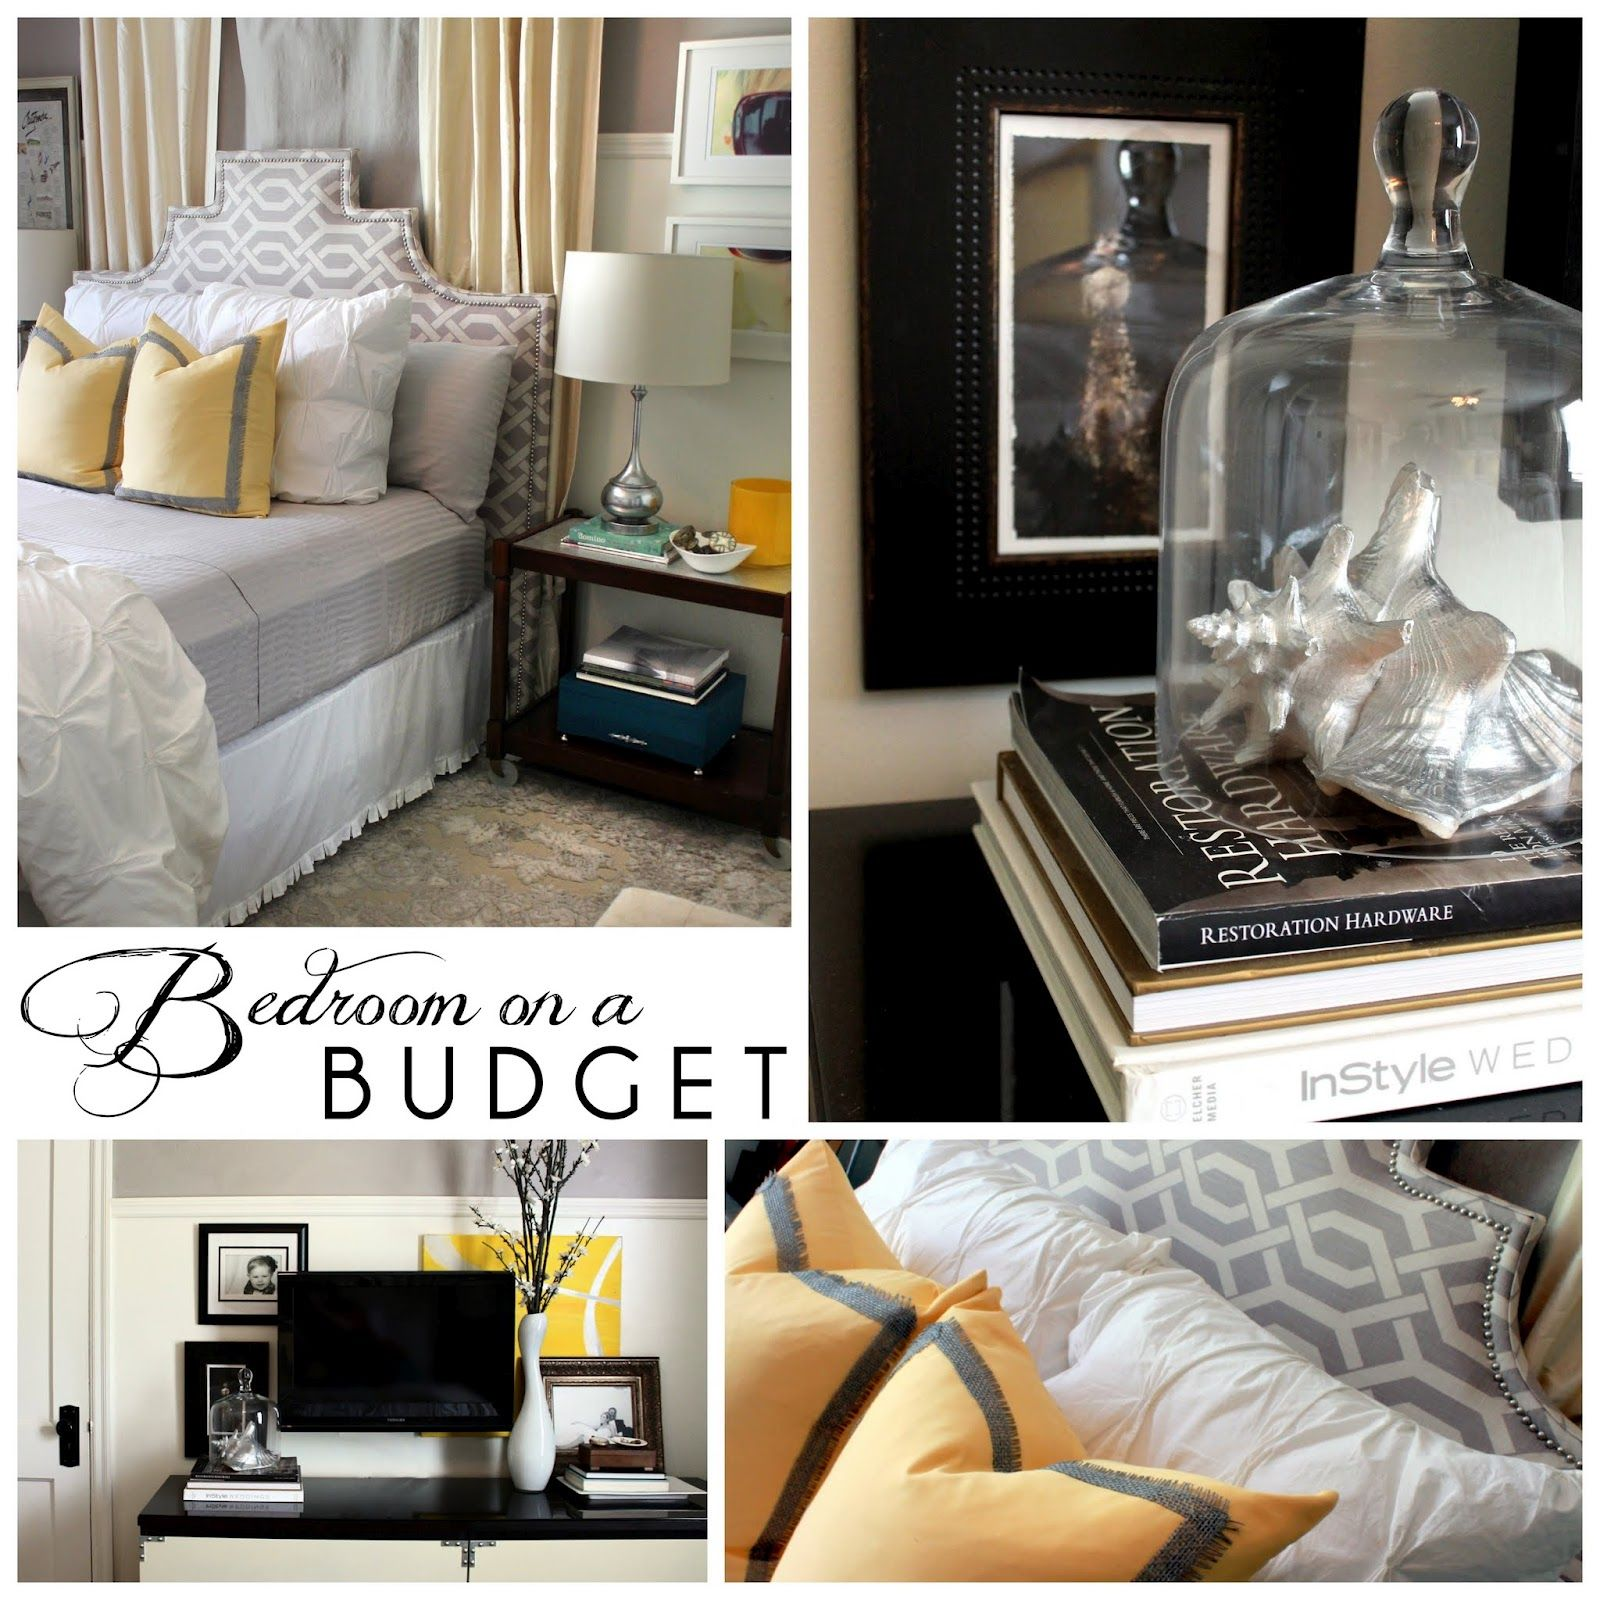 Home Design Ideas Budget: The HUNTED INTERIOR: Bedroom On A Budget, Love The Colors